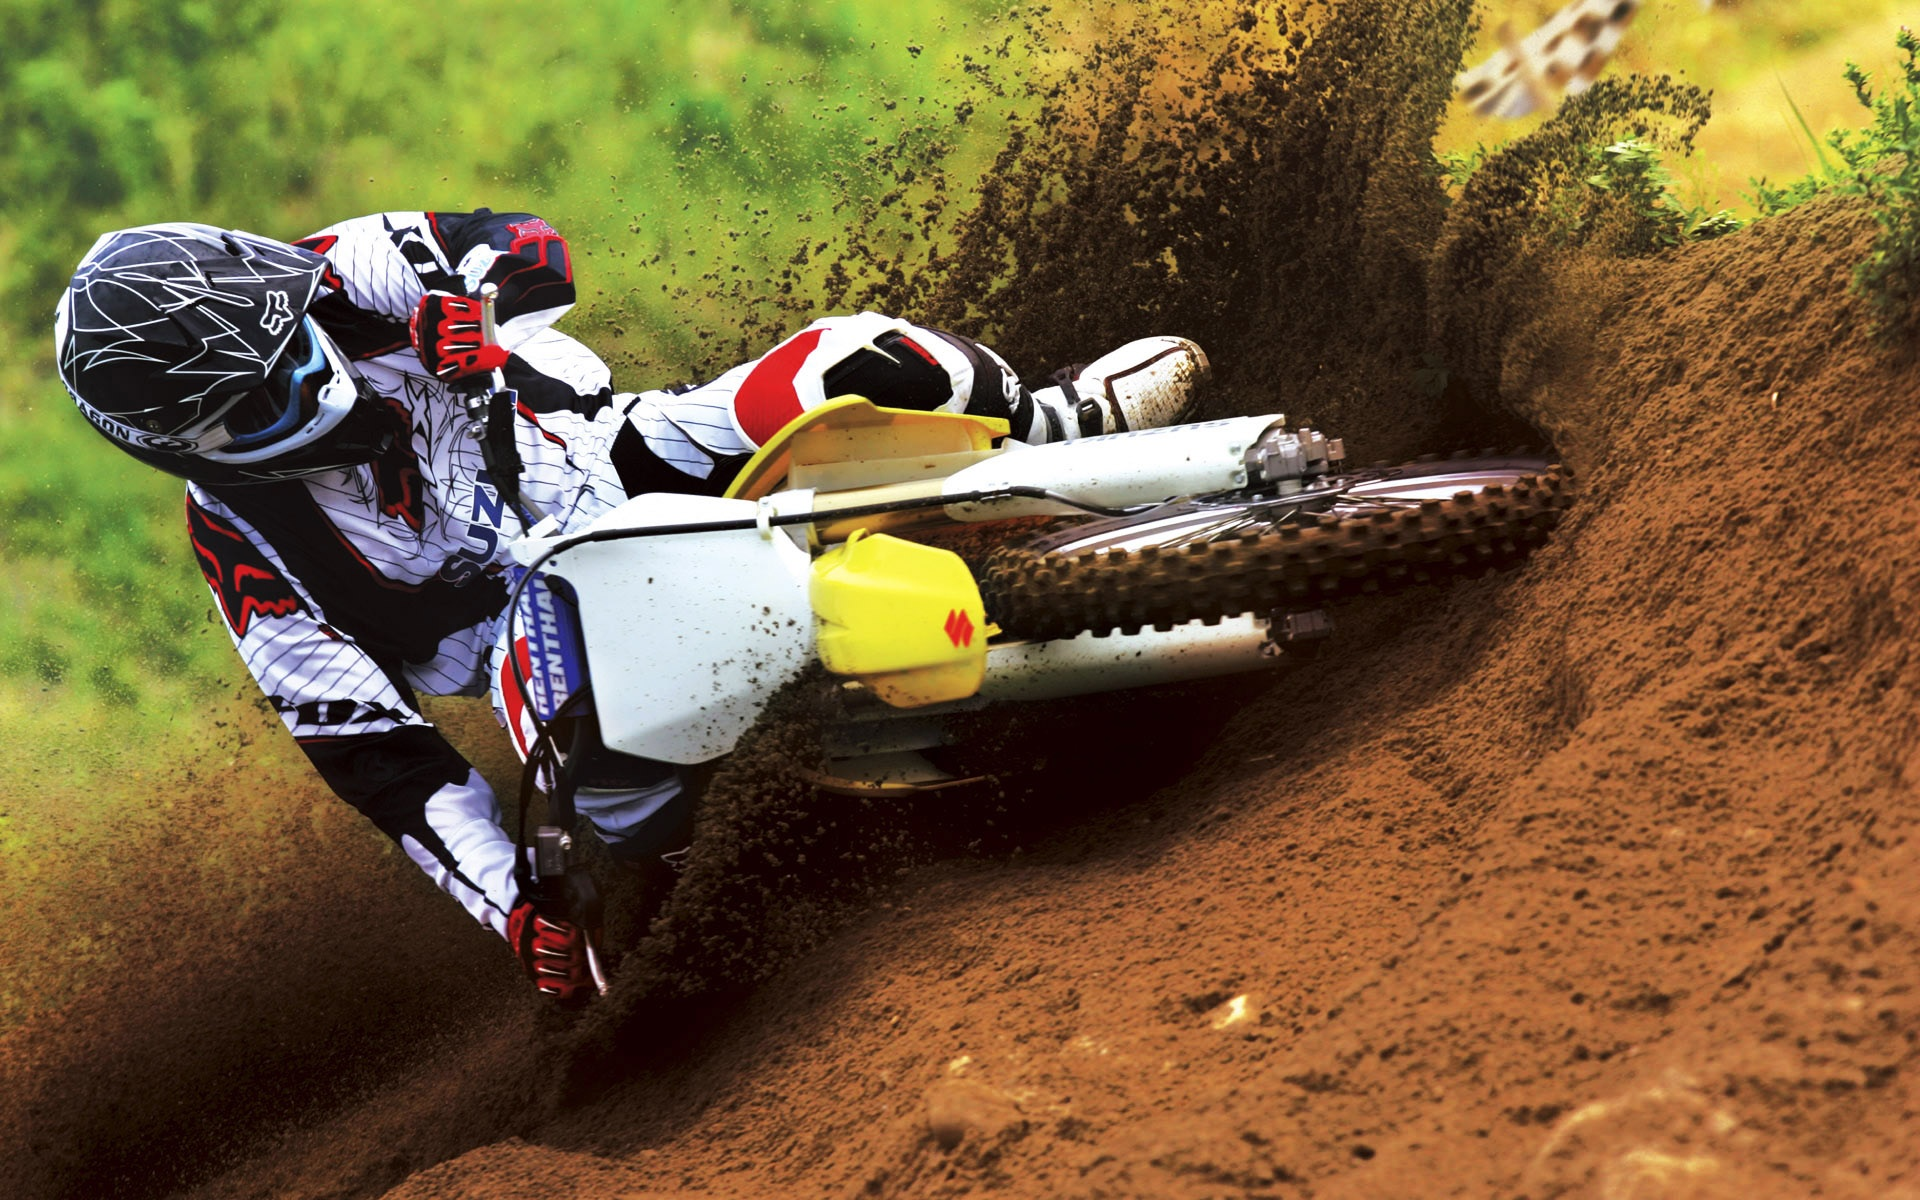 Suzuki Motocross Bike Race Wallpapers In Jpg Format For Free Download